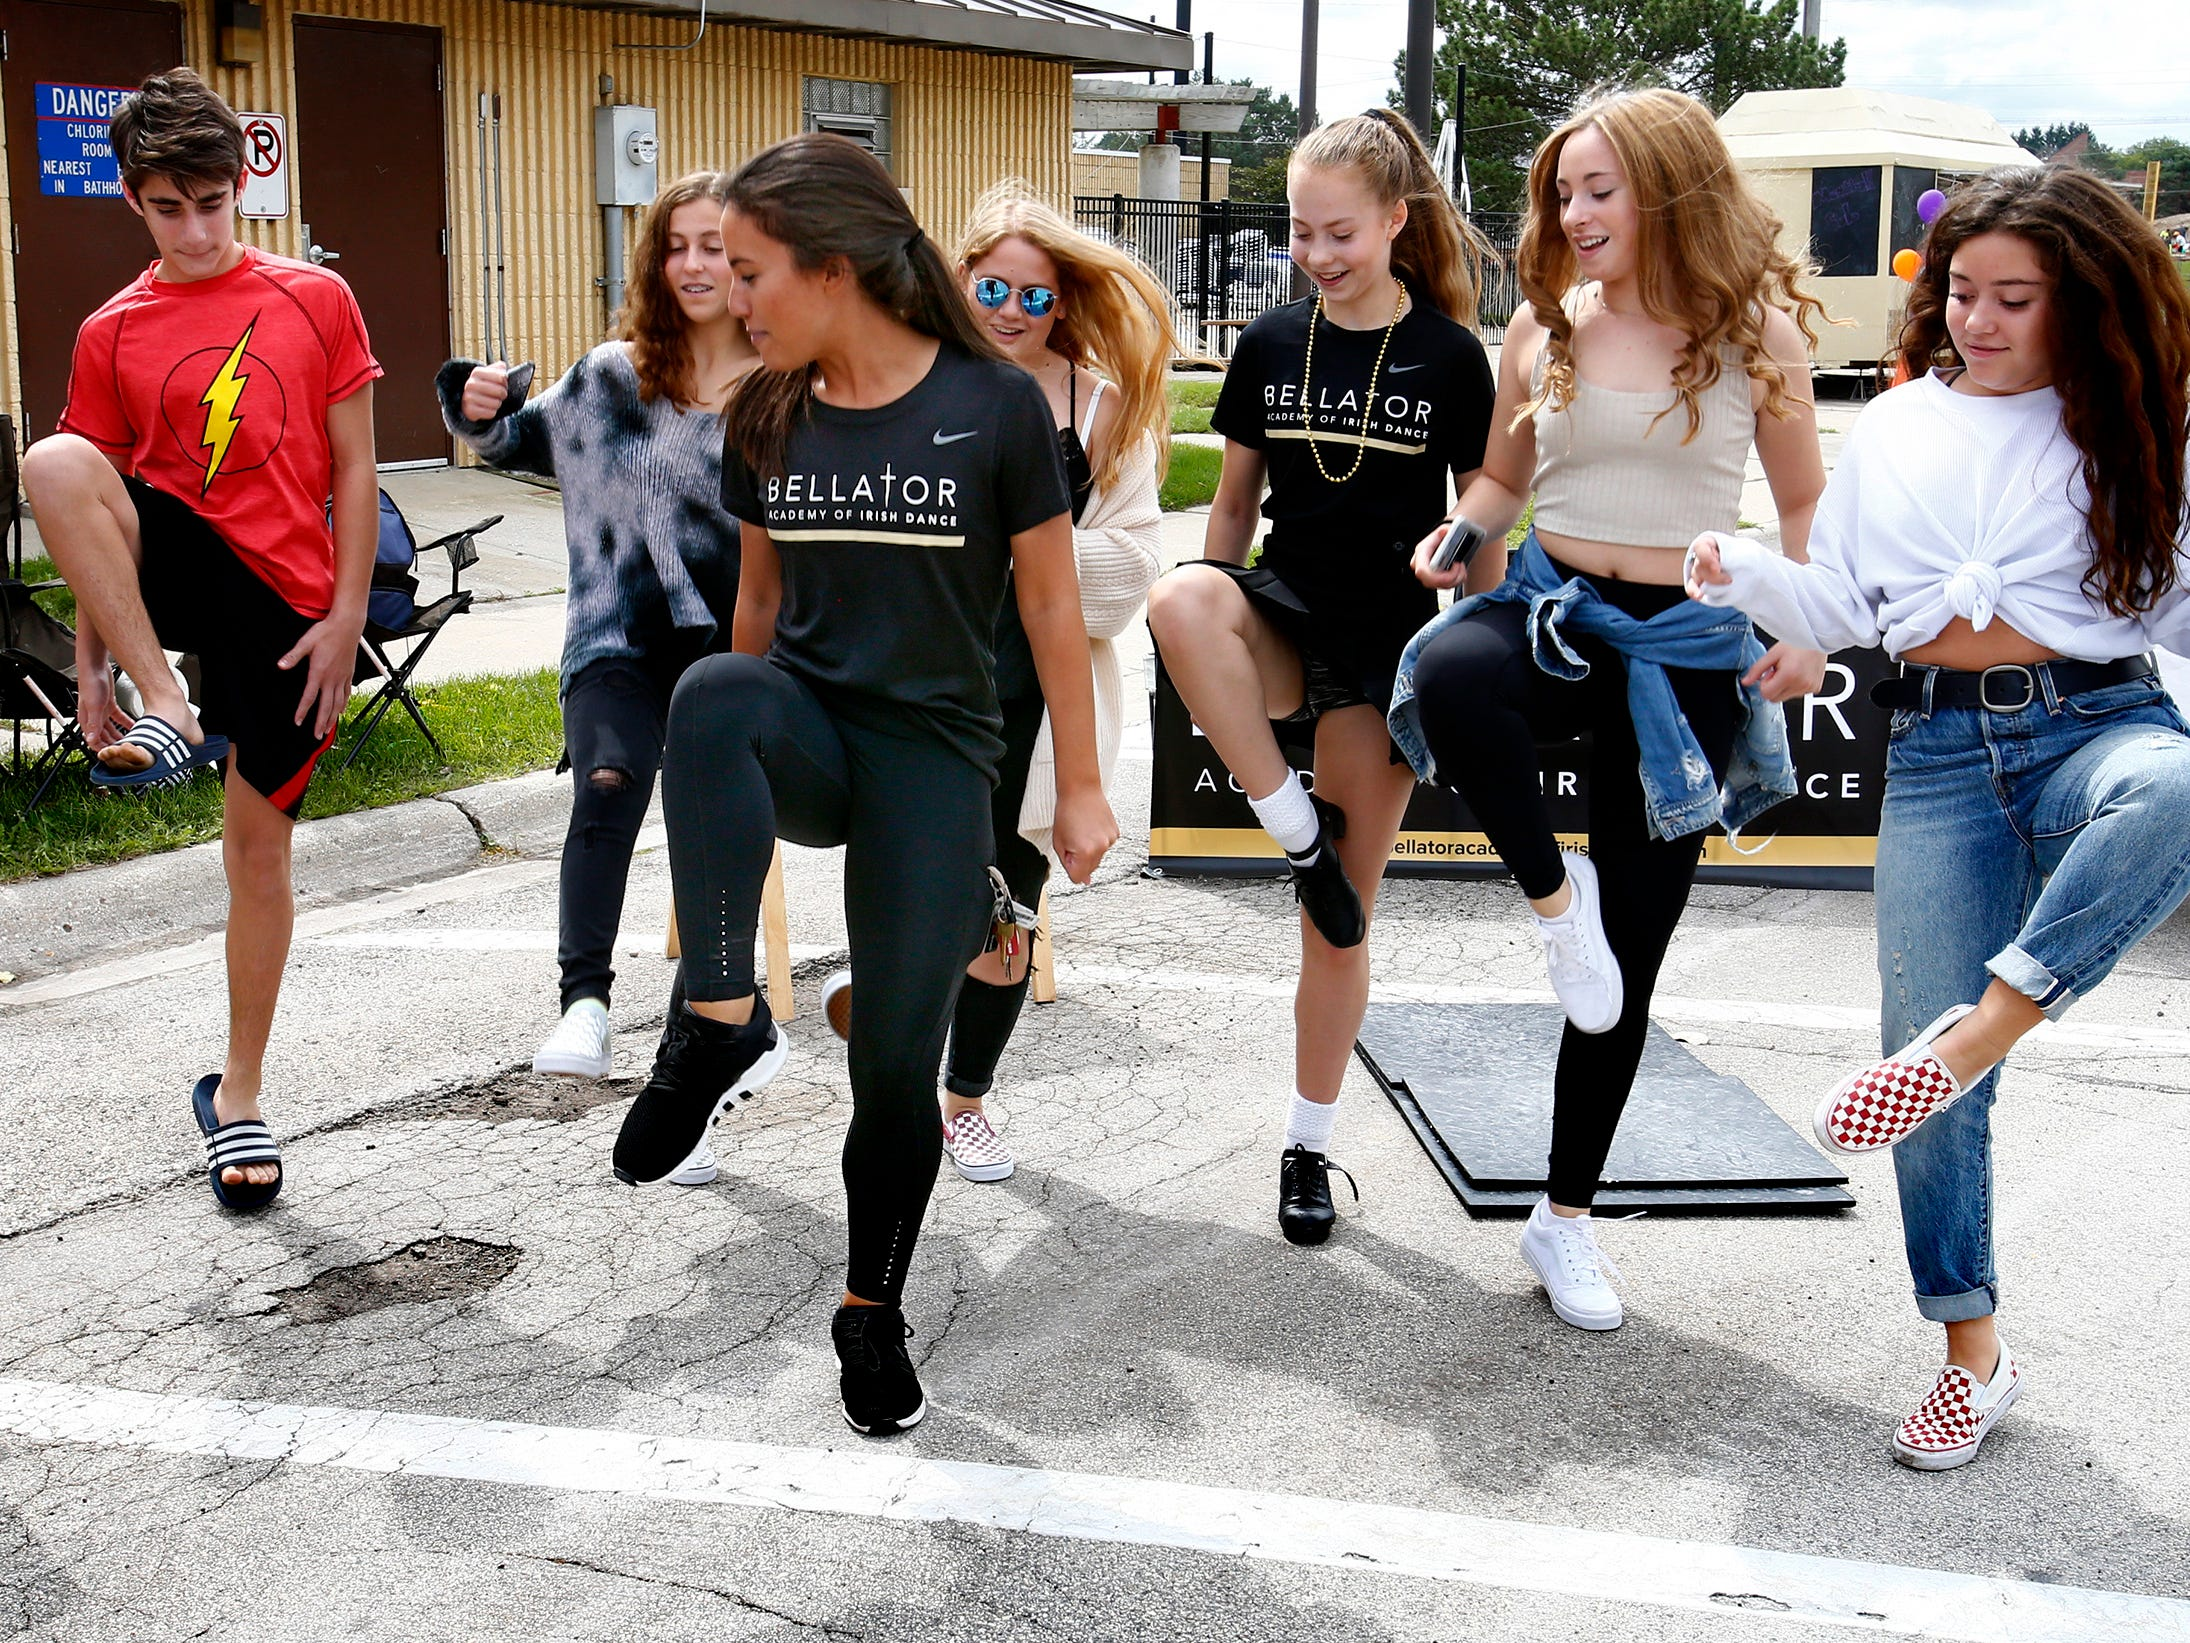 Chelsea Holloway of Bellator Academy of Irish Dance leads a group through a dance step sequence during the sixth annual Taste of Mequon in the vicinity of City Hall and on Cedarburg Road on Sept. 8.